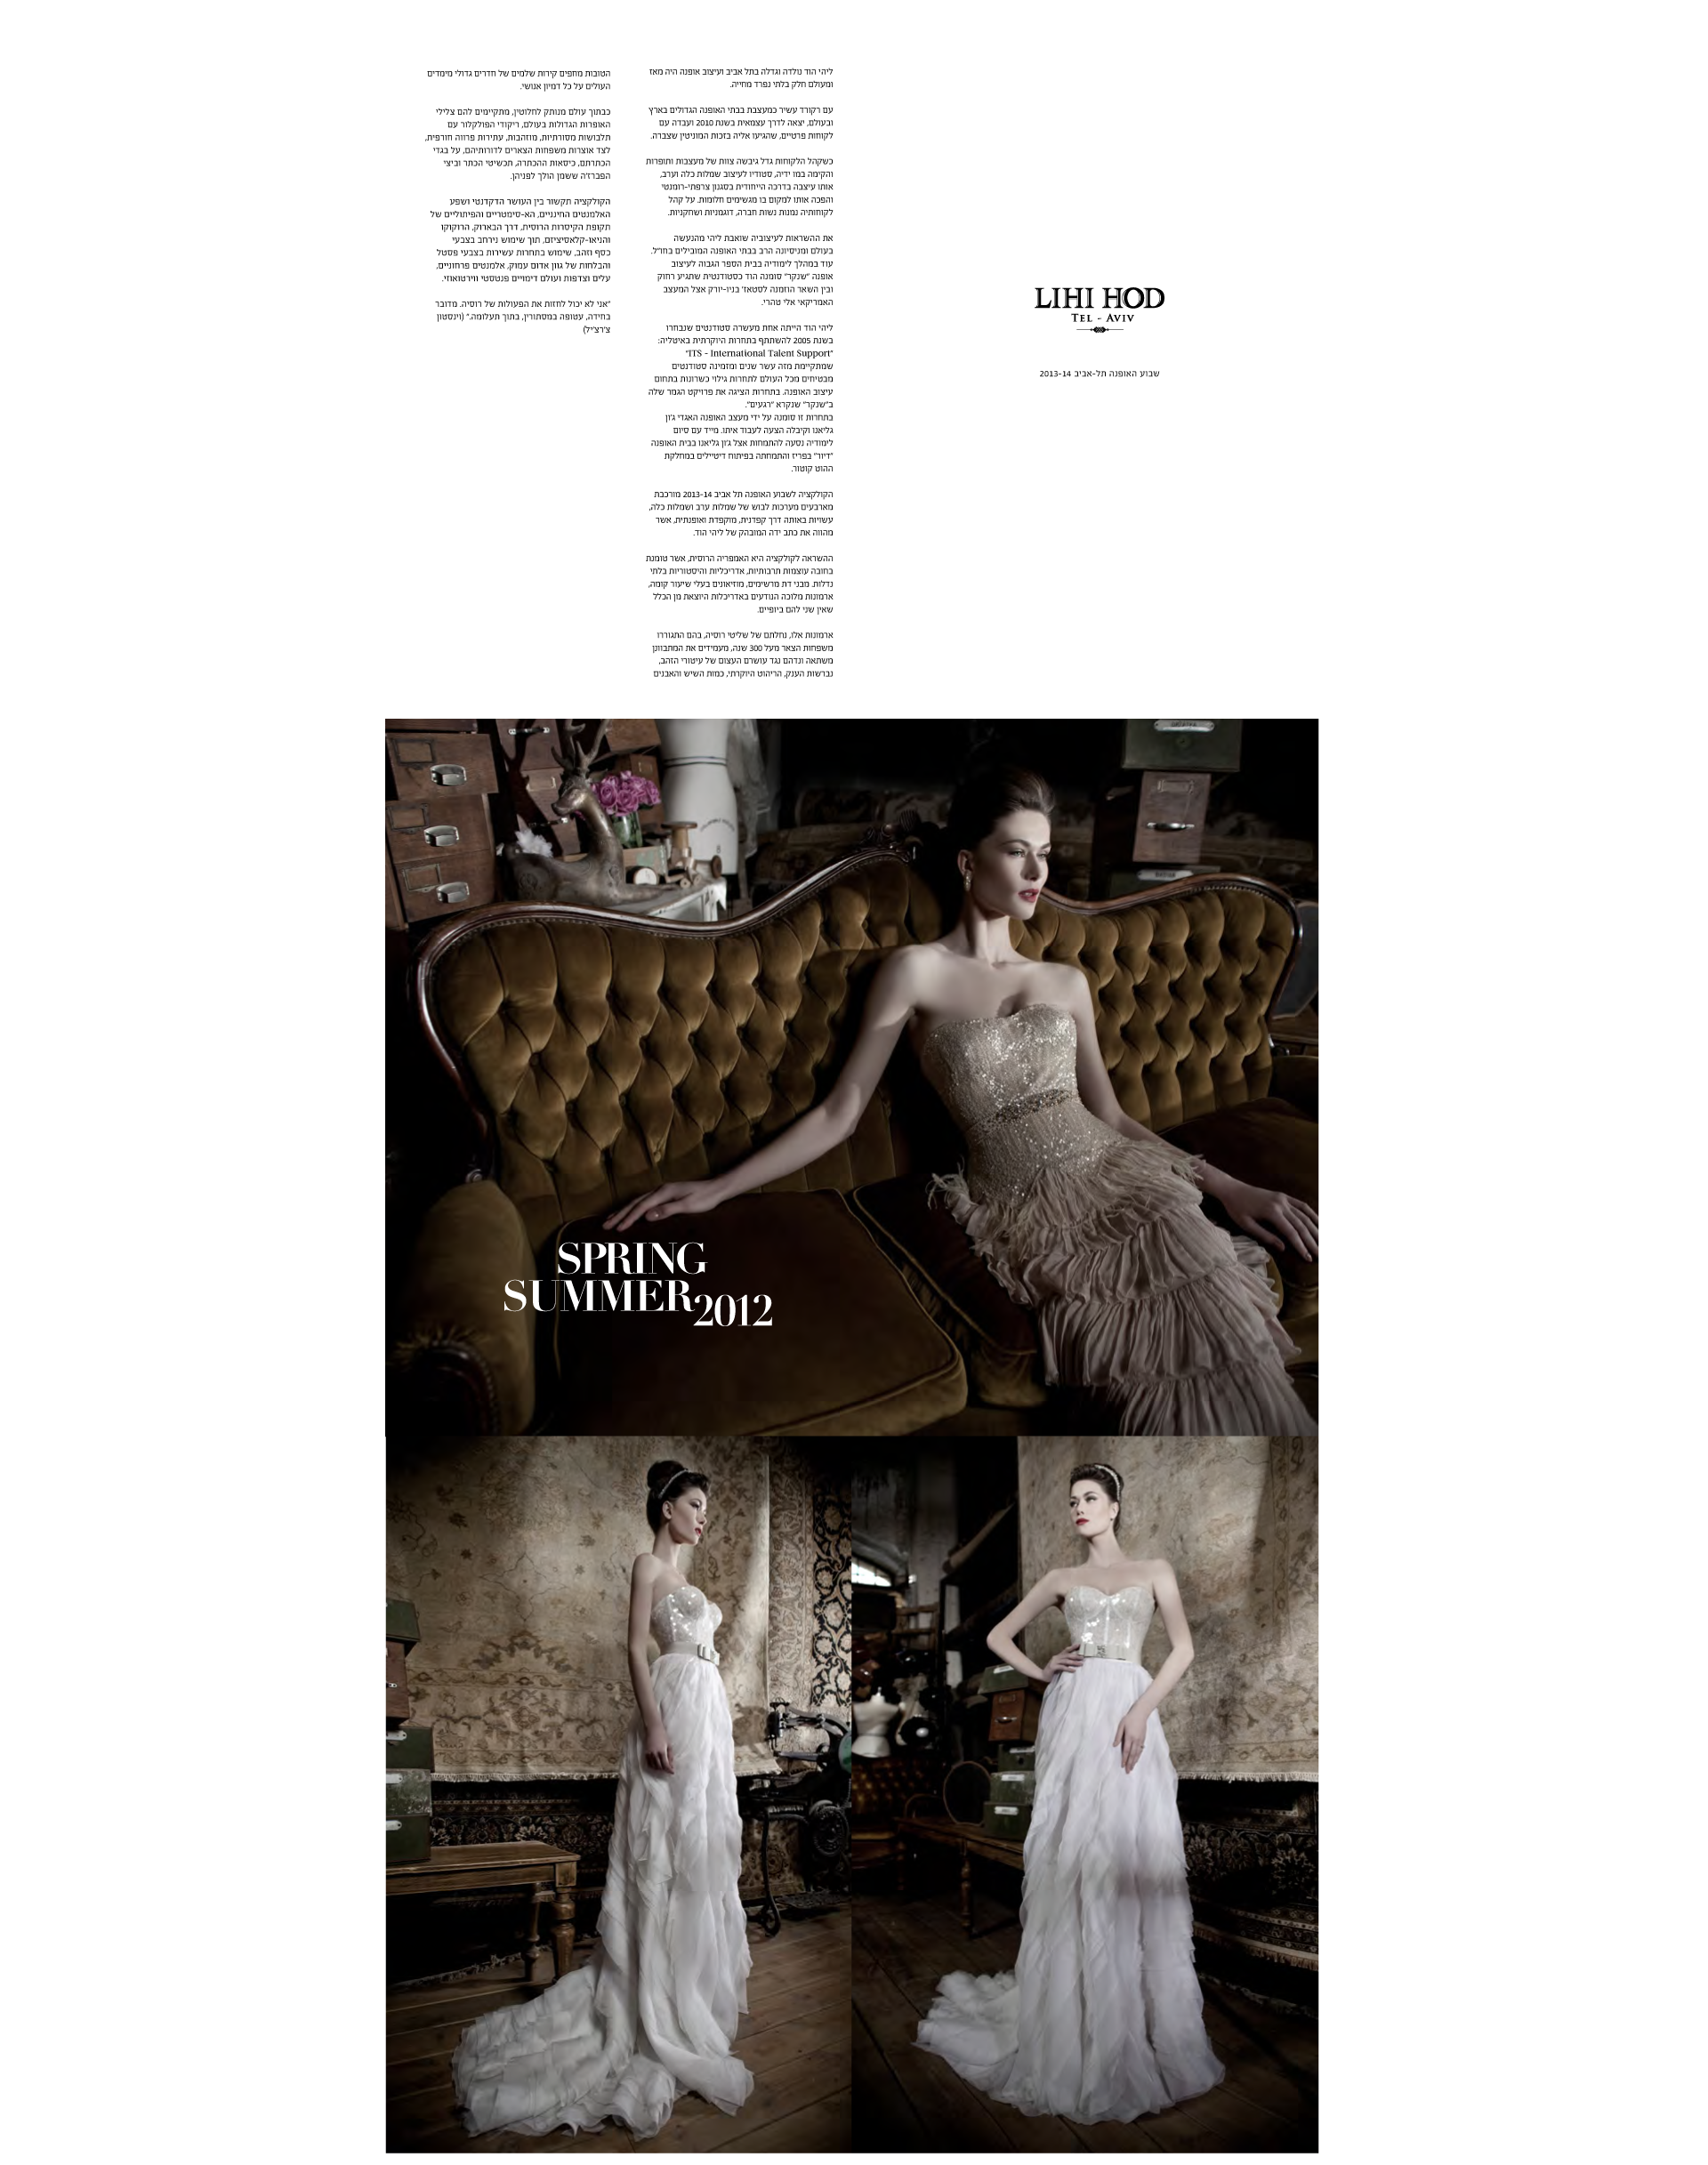 Lihi-Hod-Bridal-Body-04-copy-4-Nadmiz-Graphic-Design-Nadav-Mizrahi